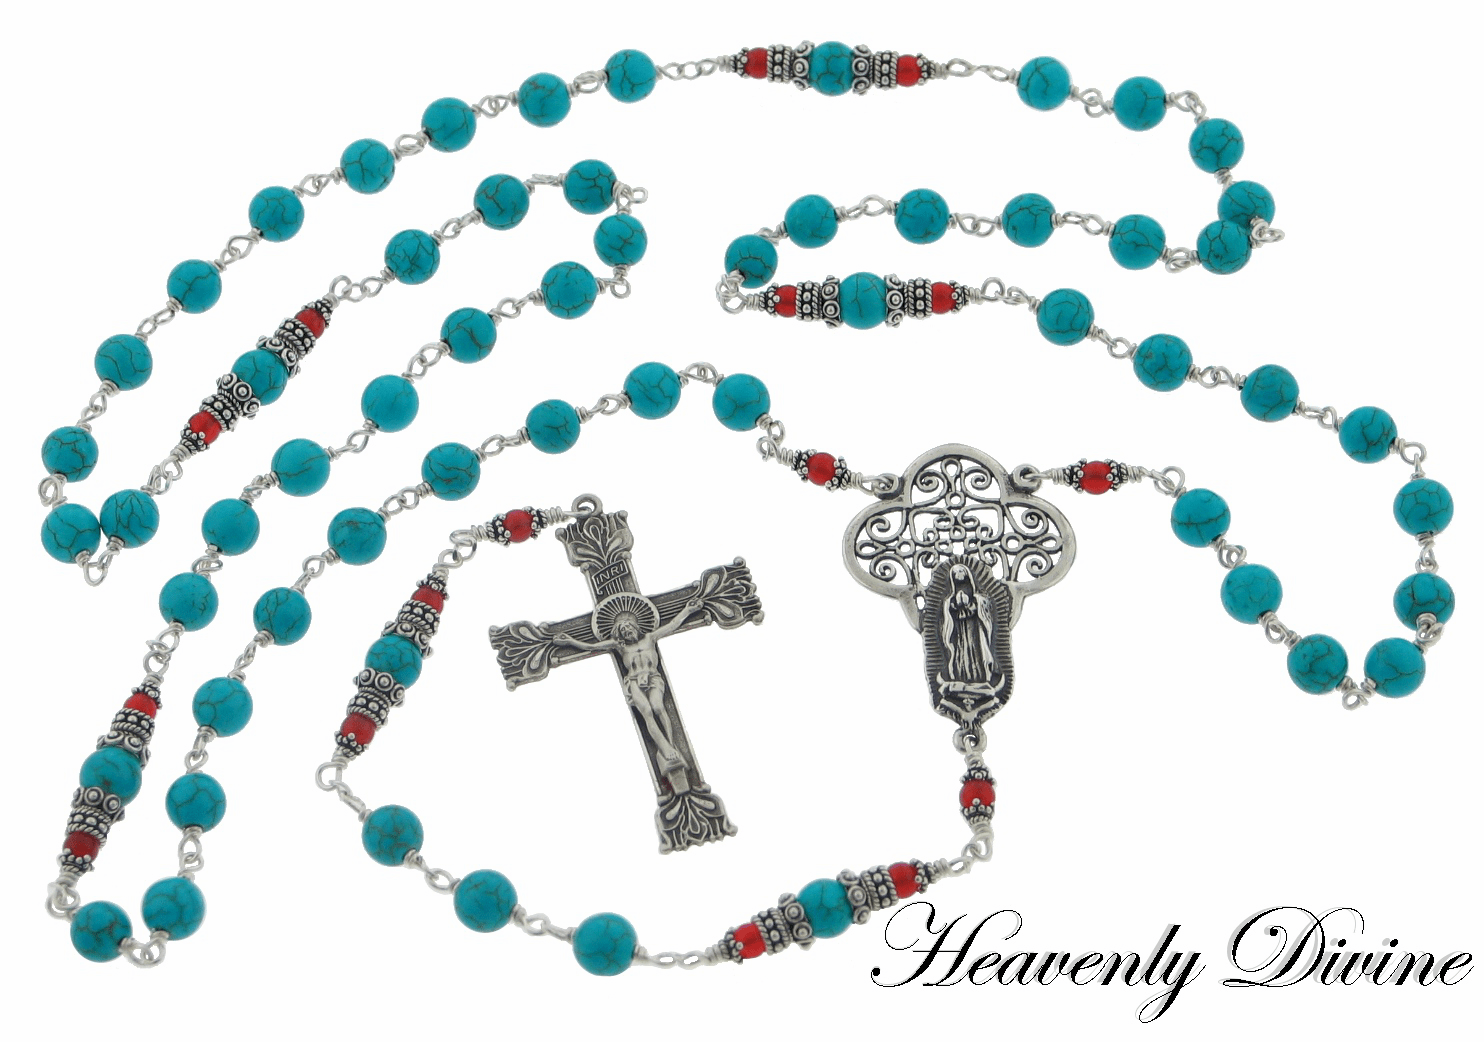 Heavenly Divine Our Lady of Guadalupe Turquoise Howlite Sterling Silver Wire-Wrapped Rosary